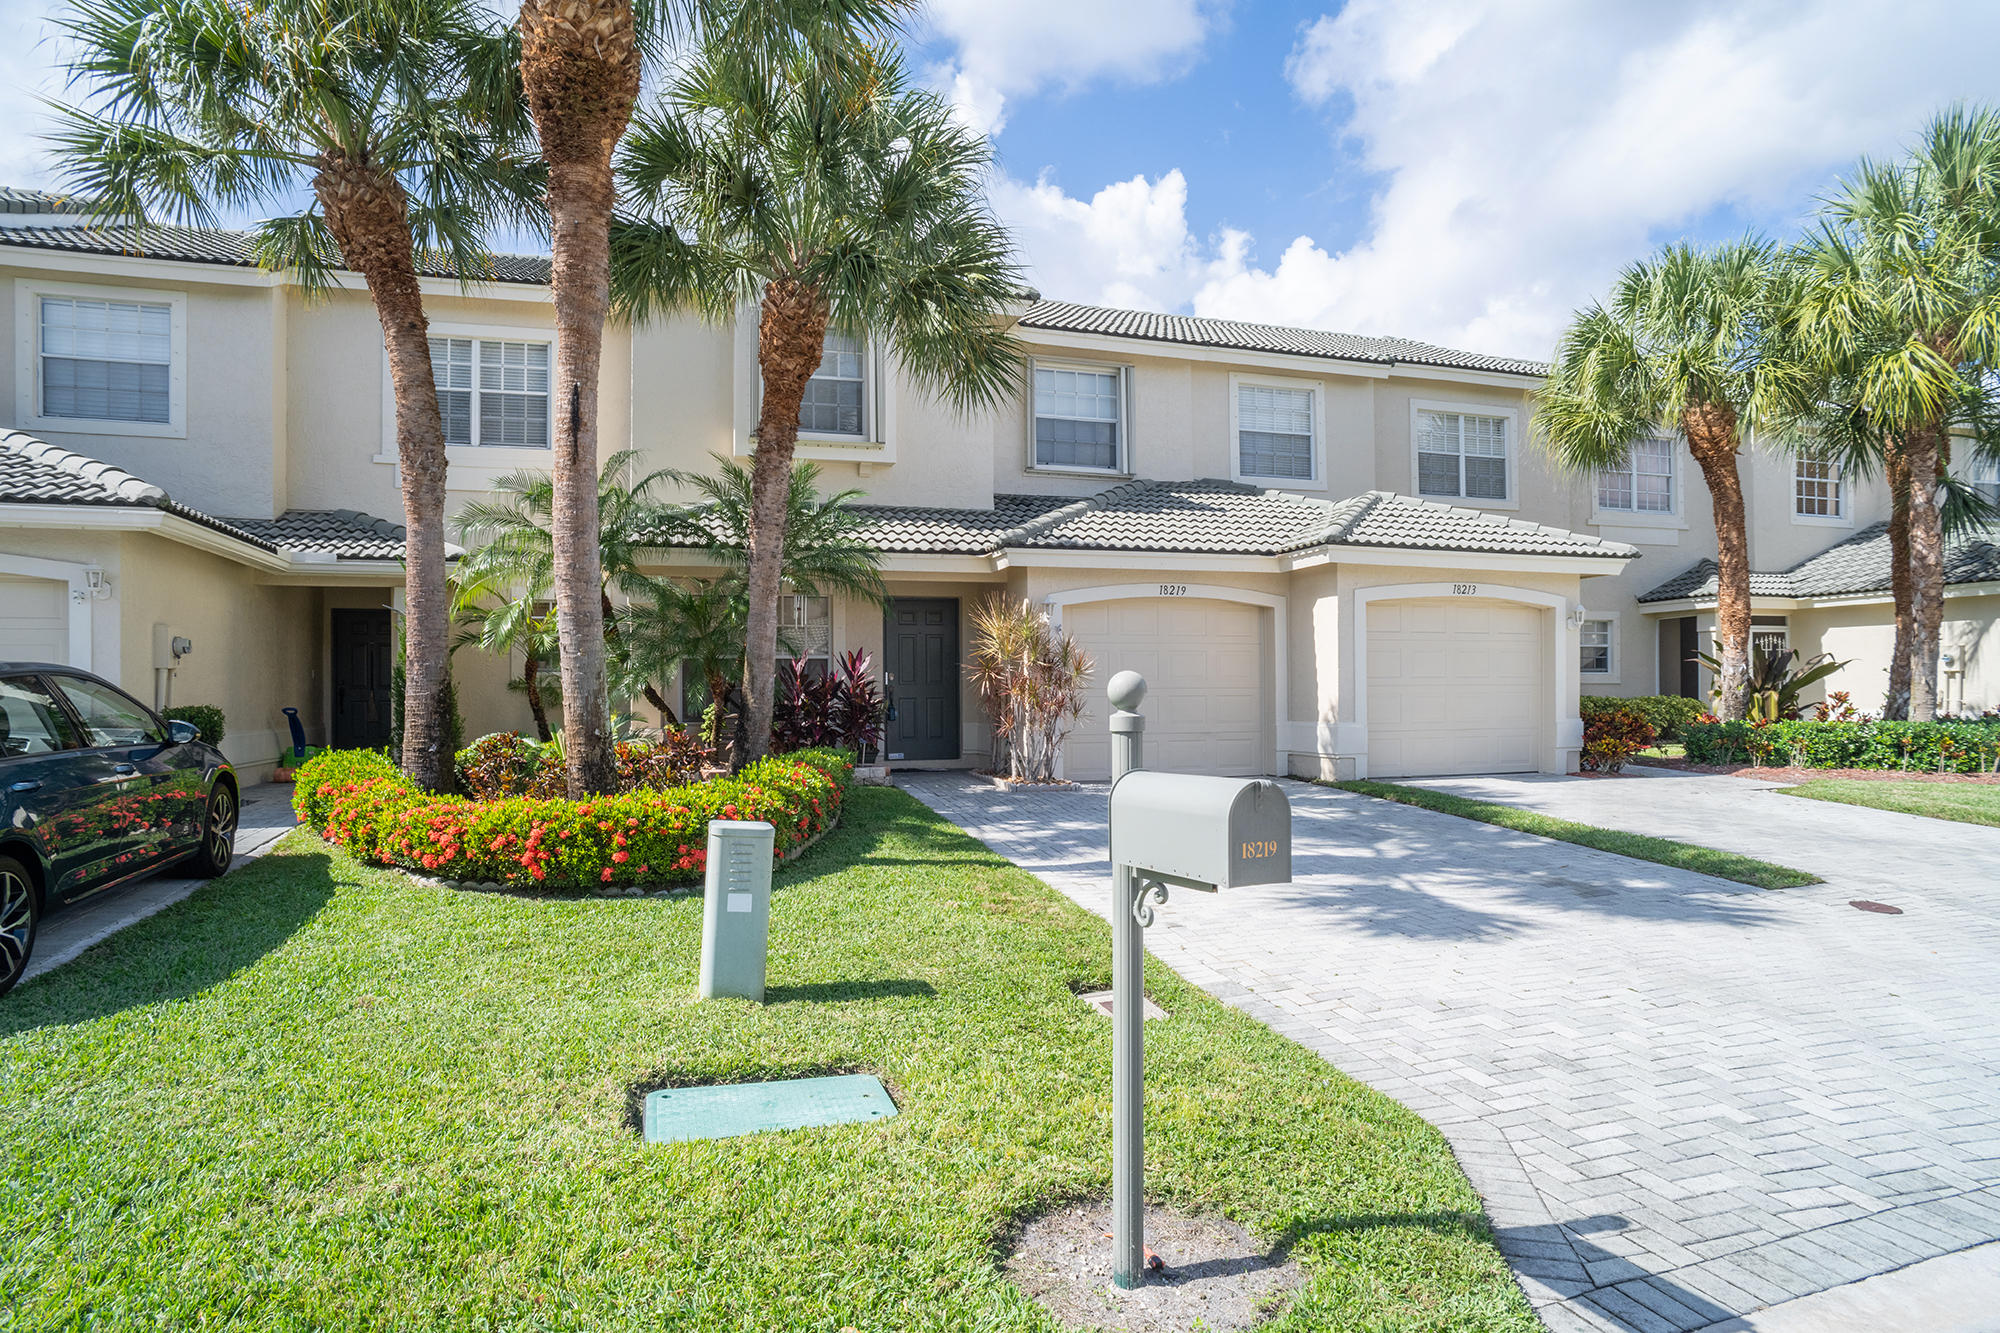 Home for sale in Coco Pointe Boca Raton Florida